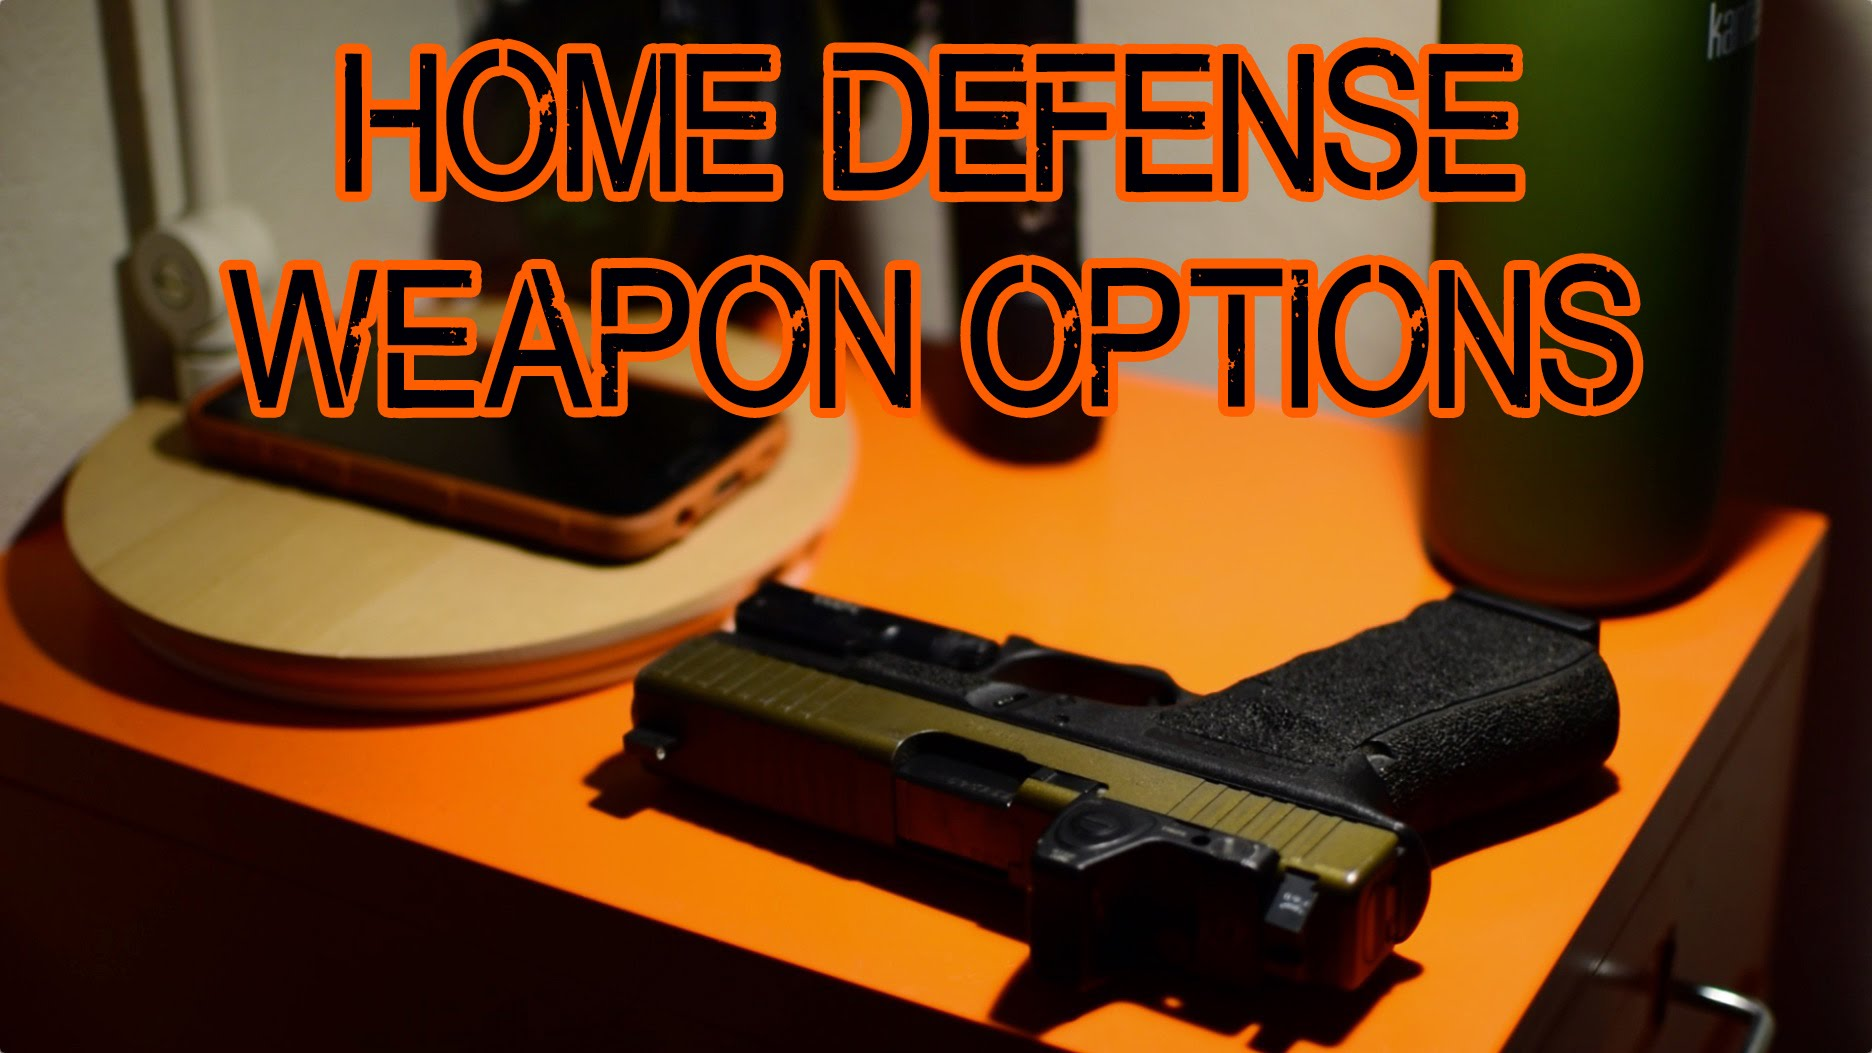 Choosing a Weapon for Home Defense - Pistol, Shotgun, or AR-15